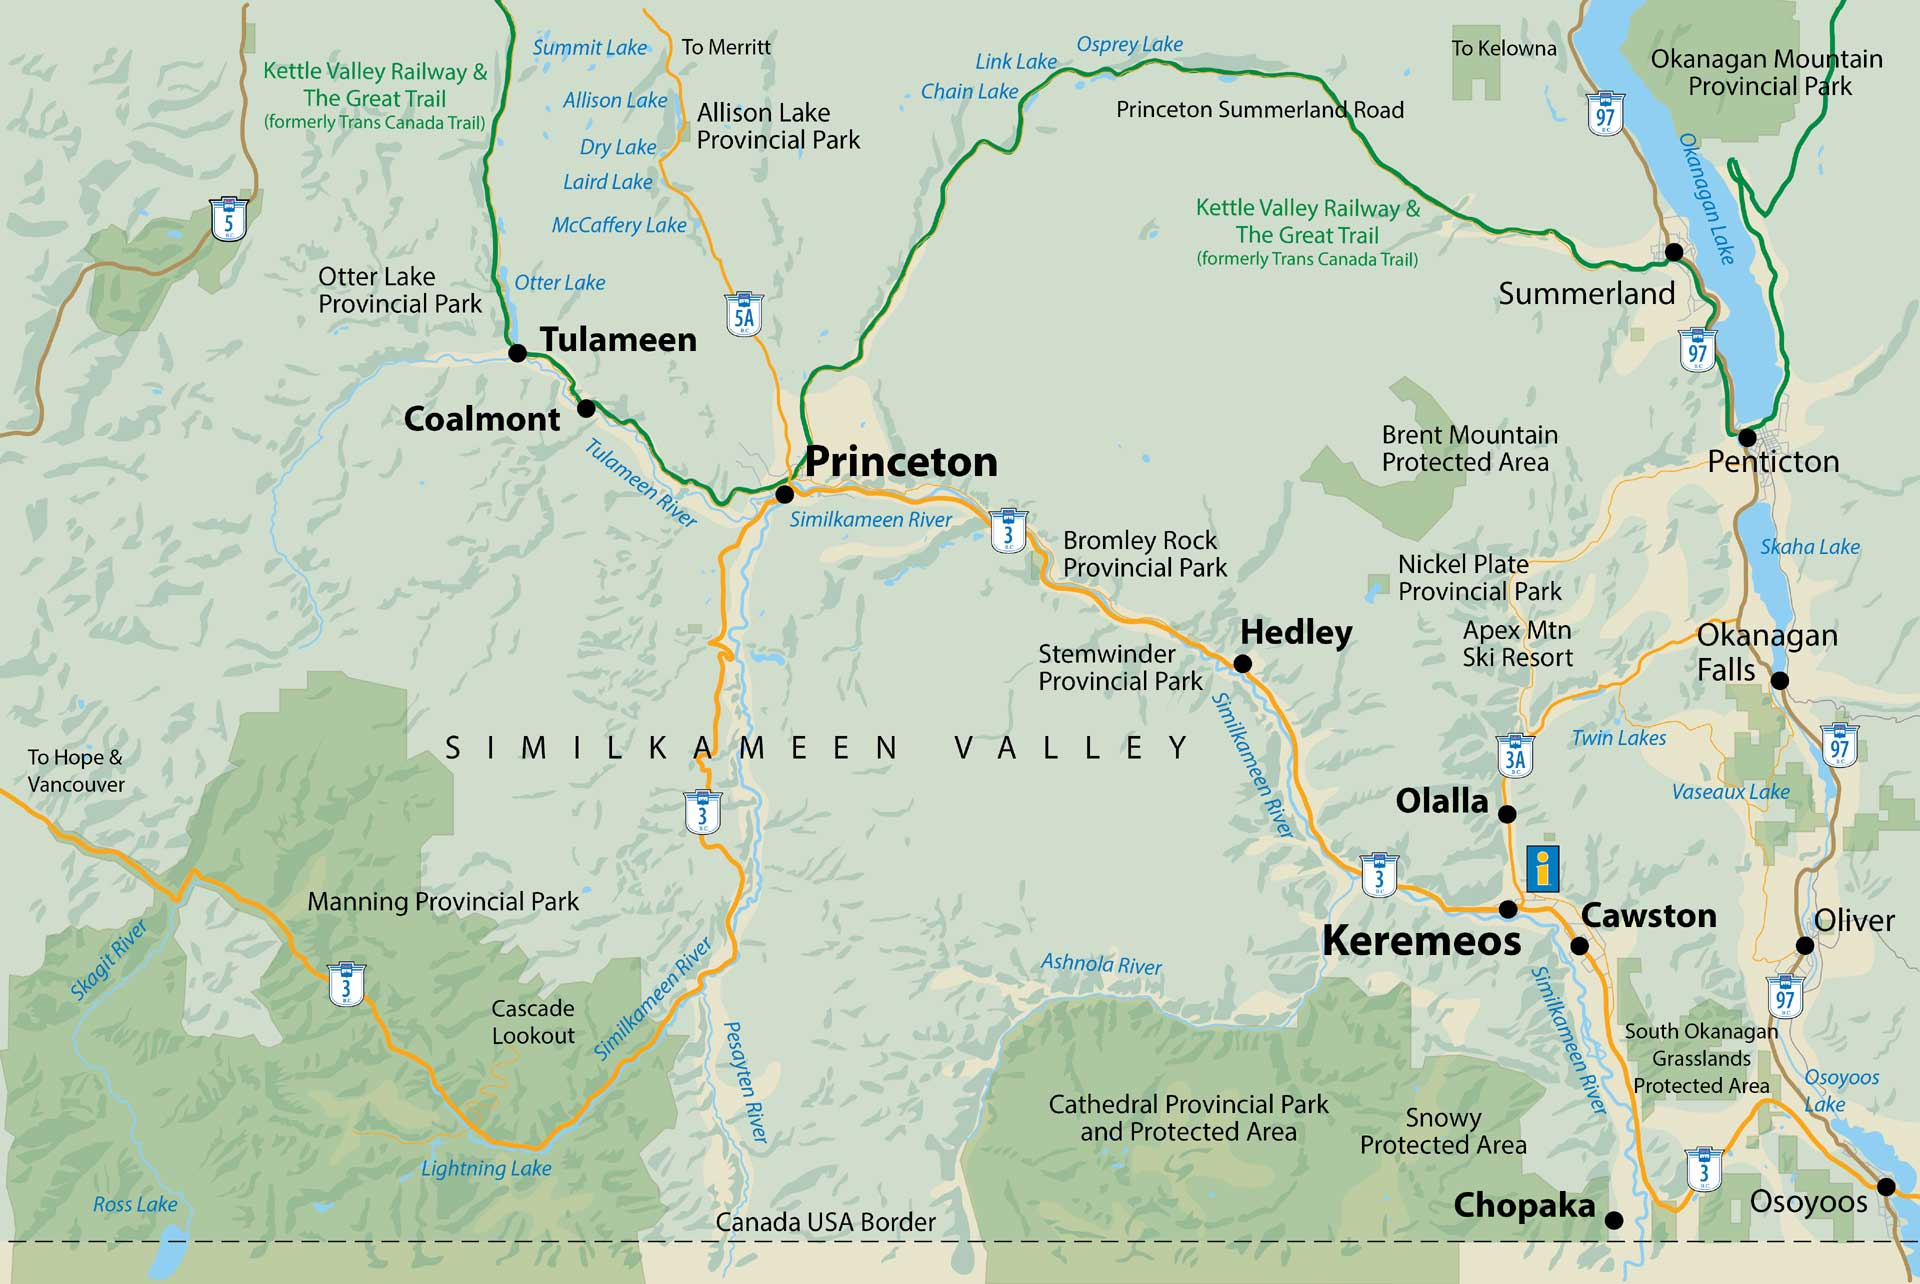 Map of the Similkameen Valley